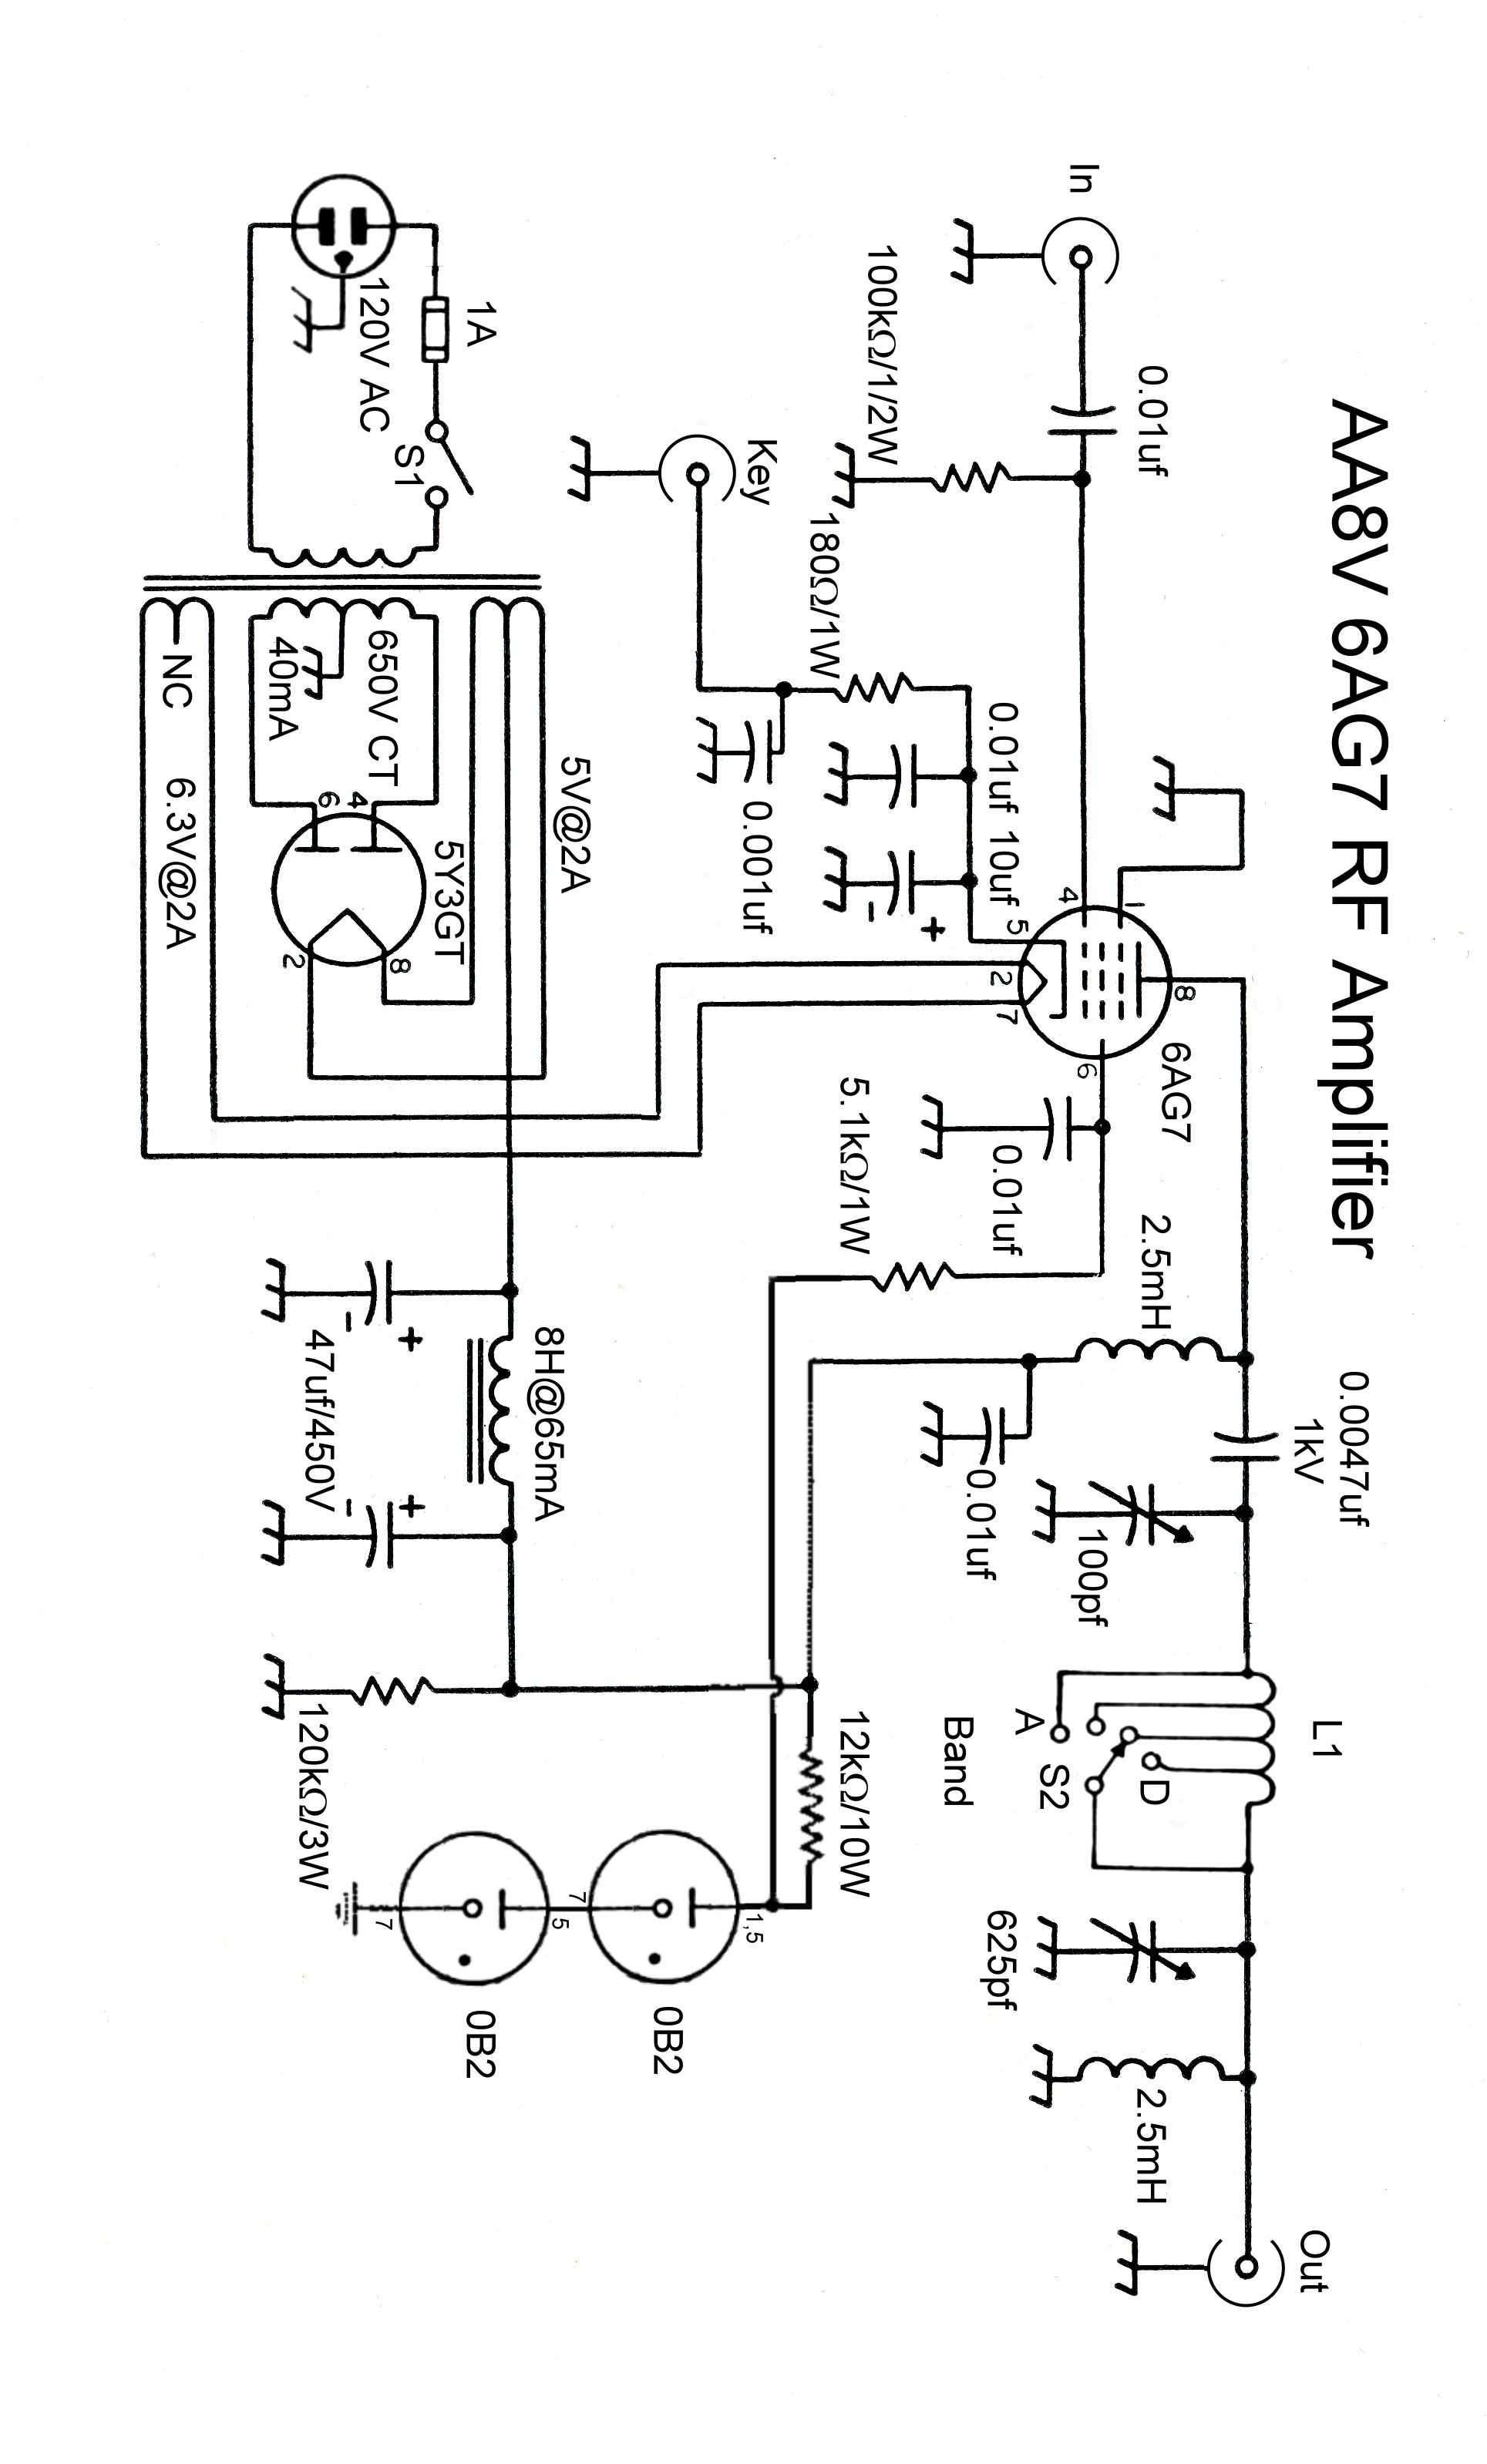 The AA8V 6AG7 Amplifier - Schematic Diagrams and Circuit Descriptions